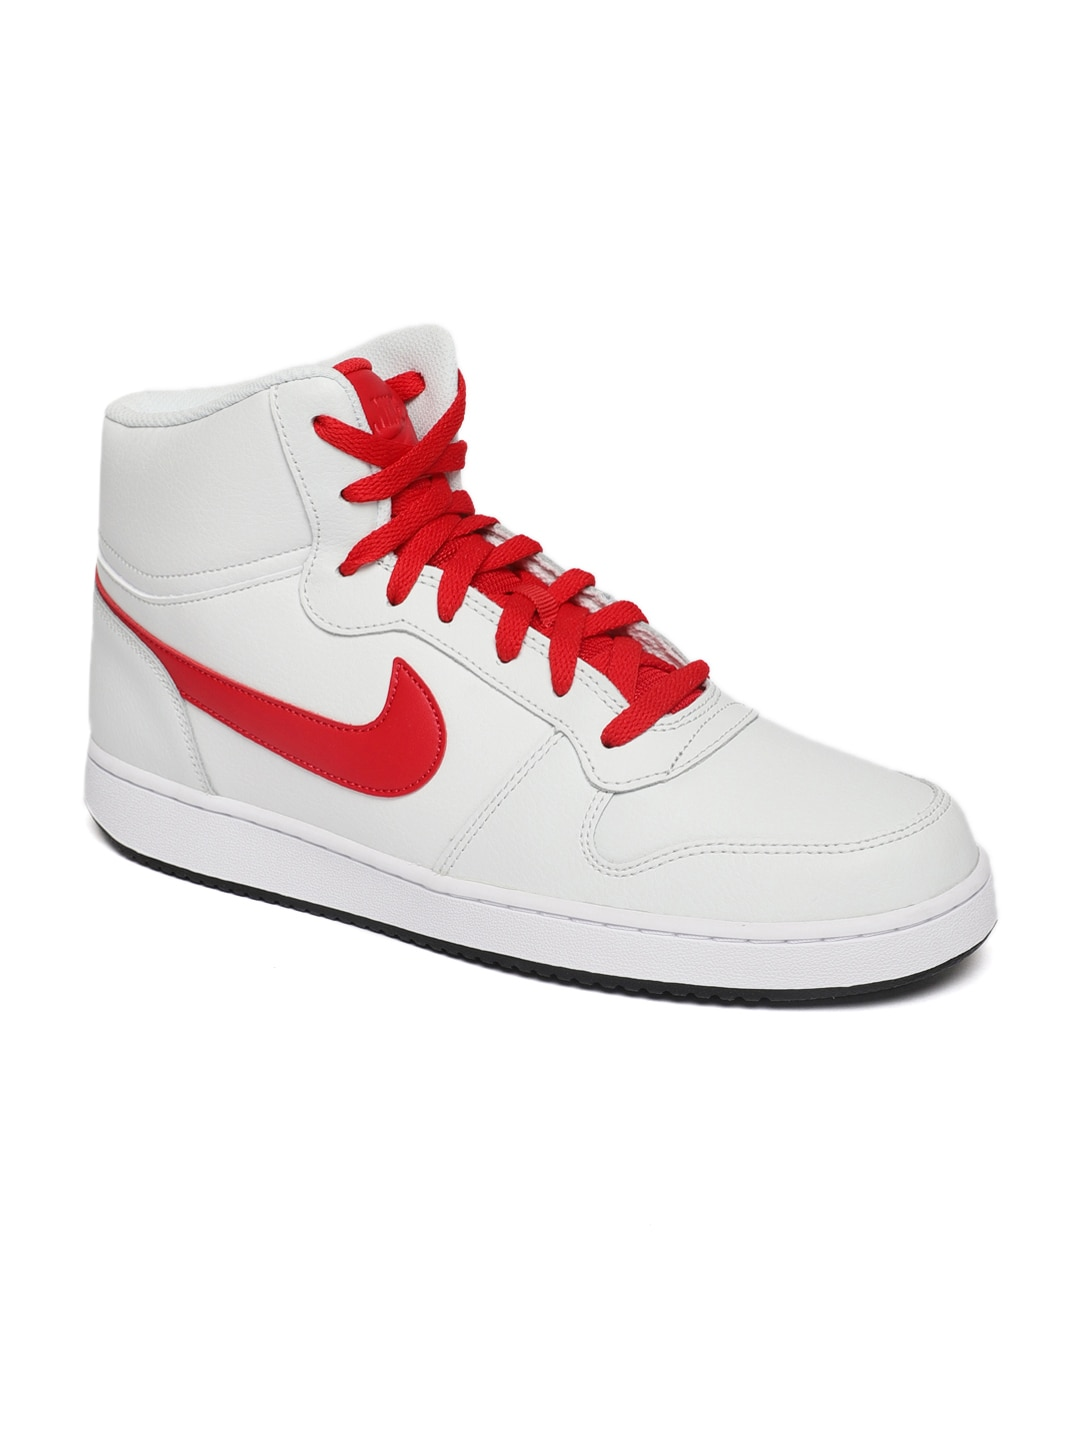 854aacc711876 Nike Apparel Casual Shoes - Buy Nike Apparel Casual Shoes online in India